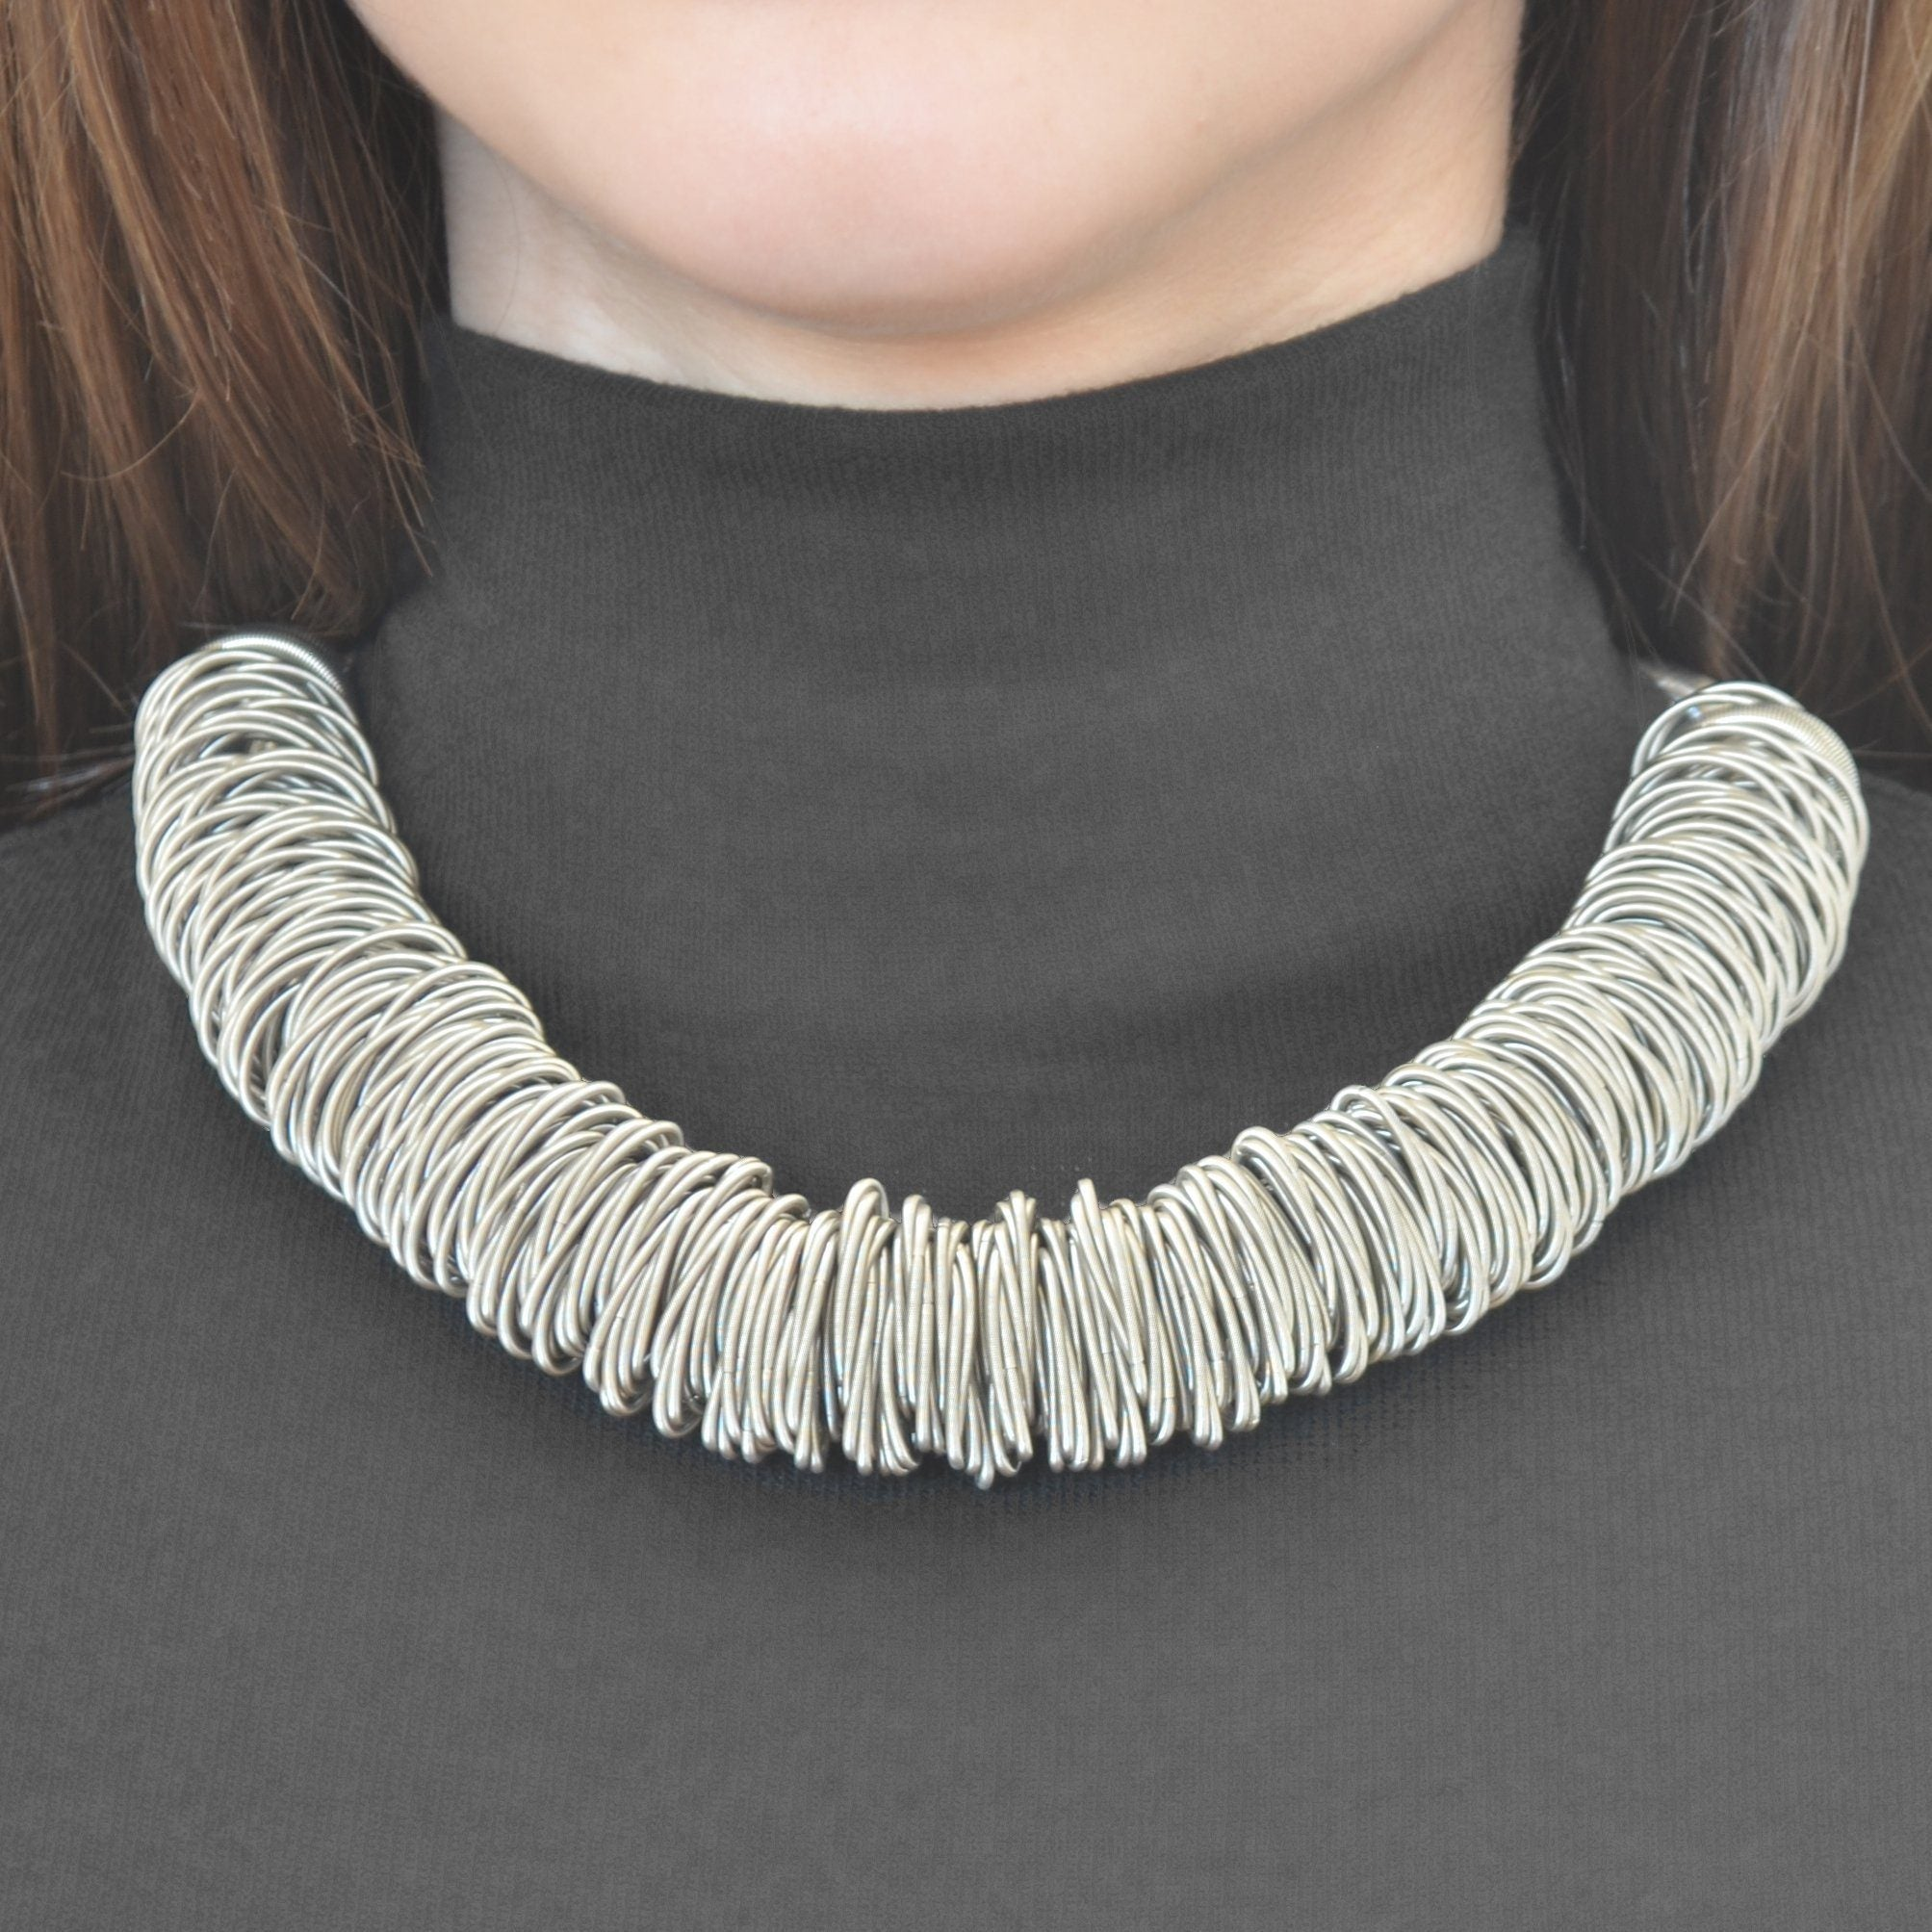 La Mollla Maxi One Necklace